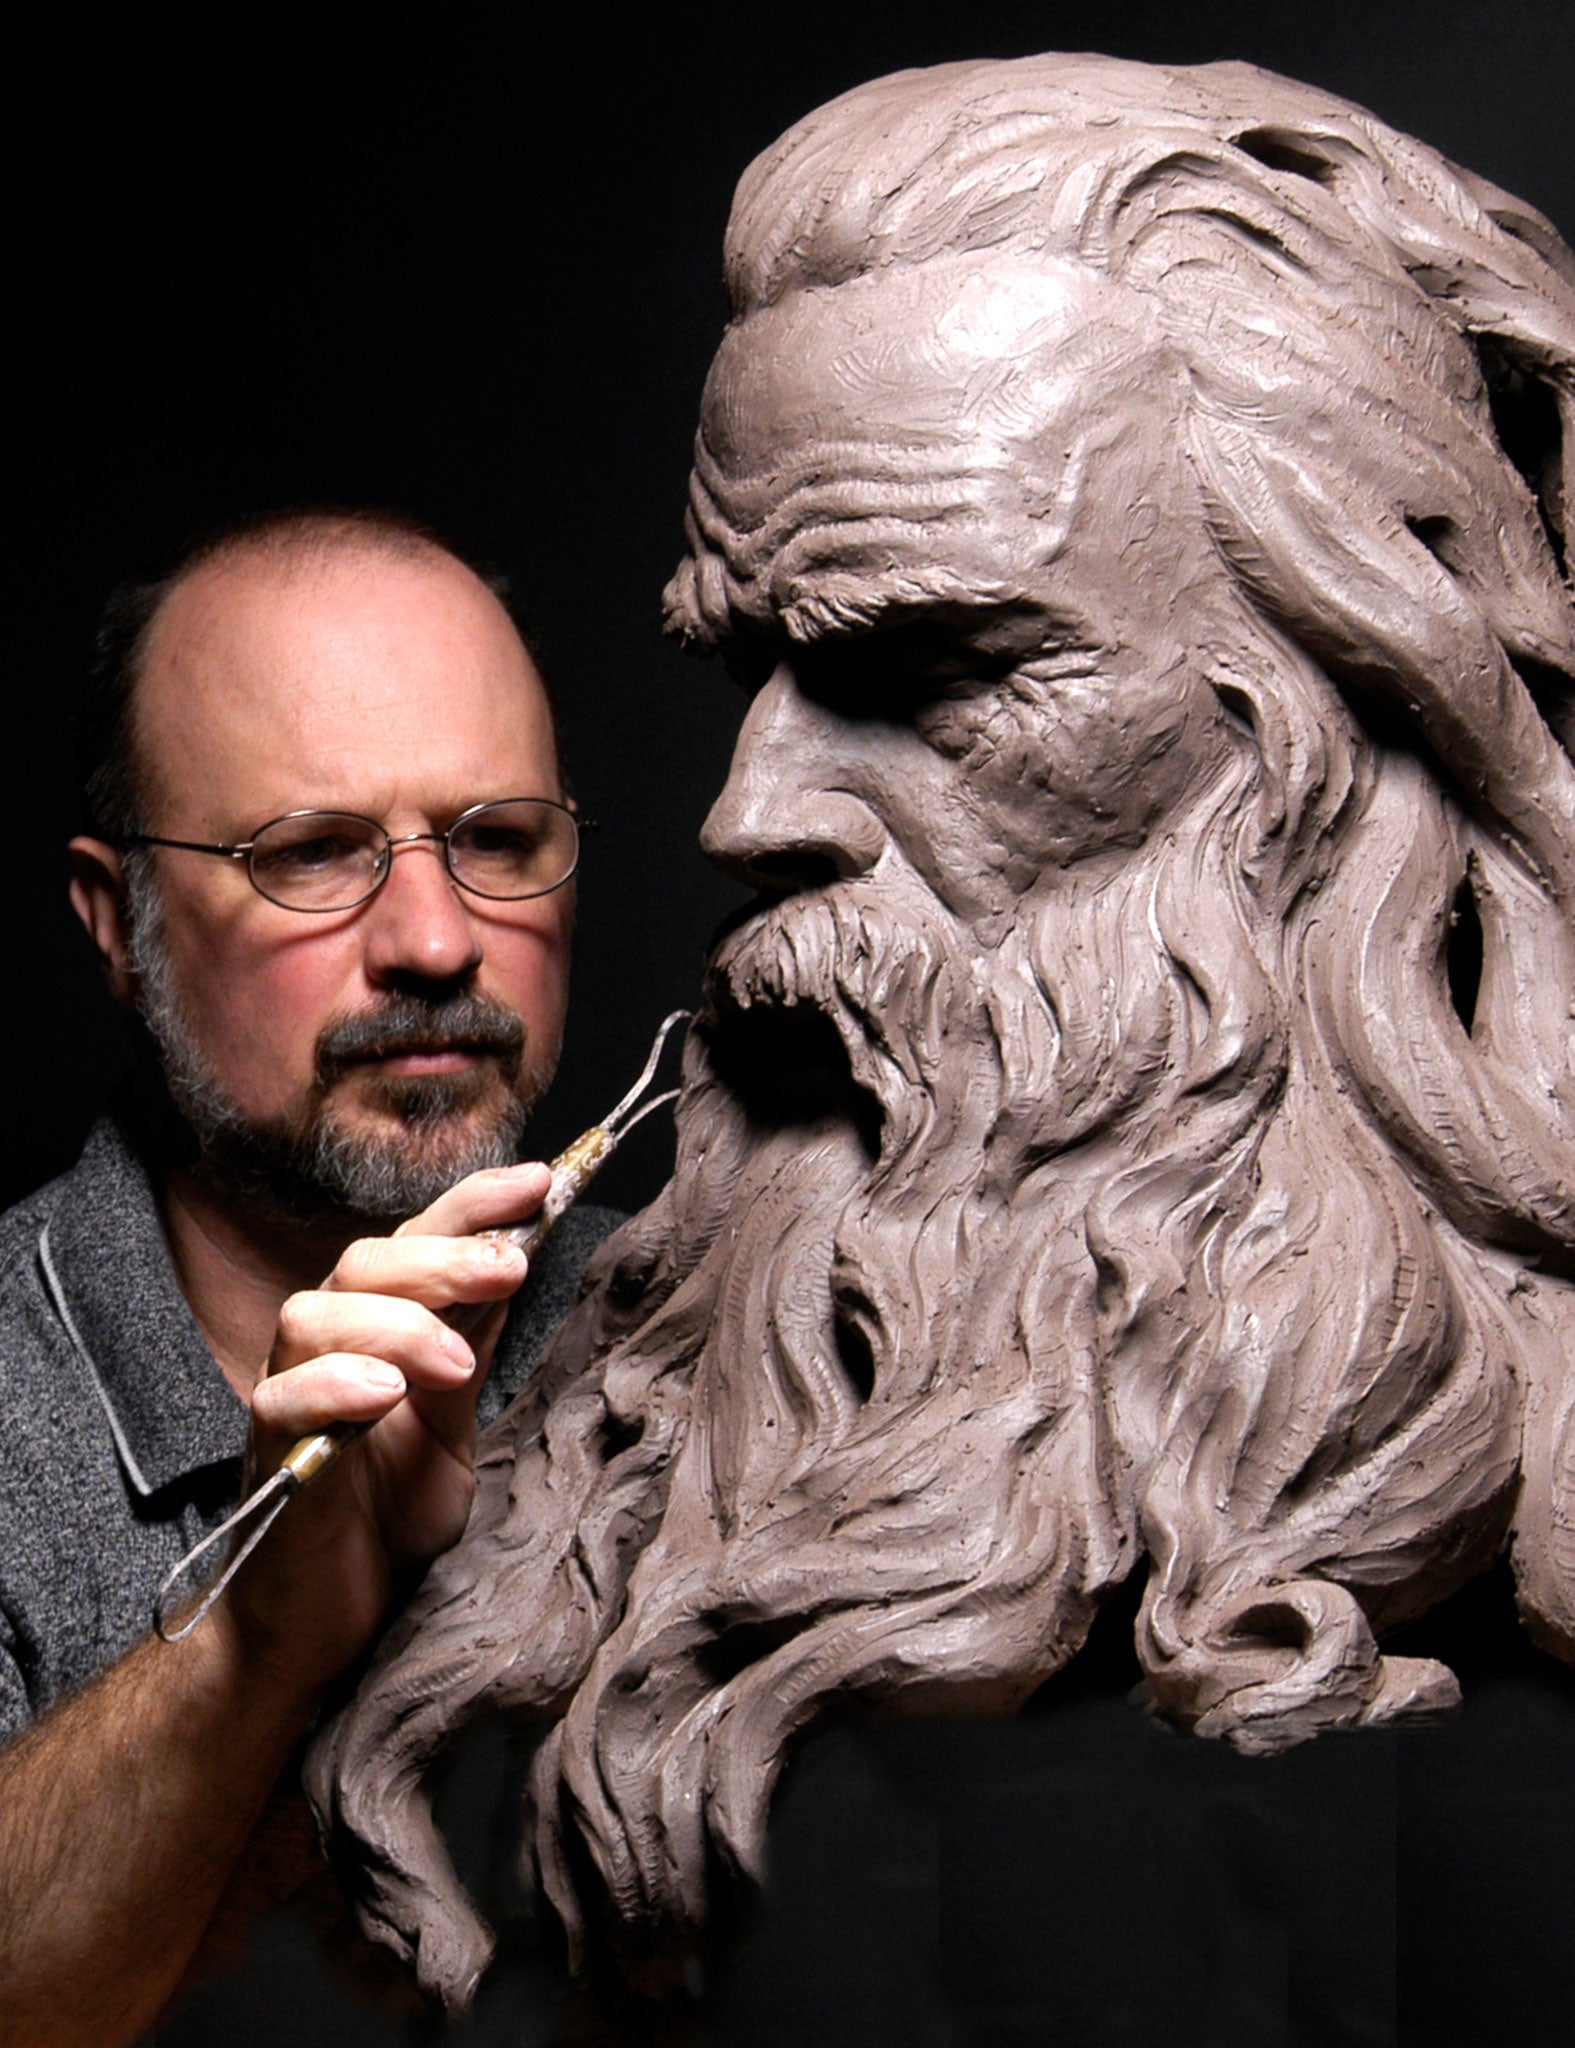 Philippe Faraut sculpting over-sized clay bust of man with beard for sculpting workshops